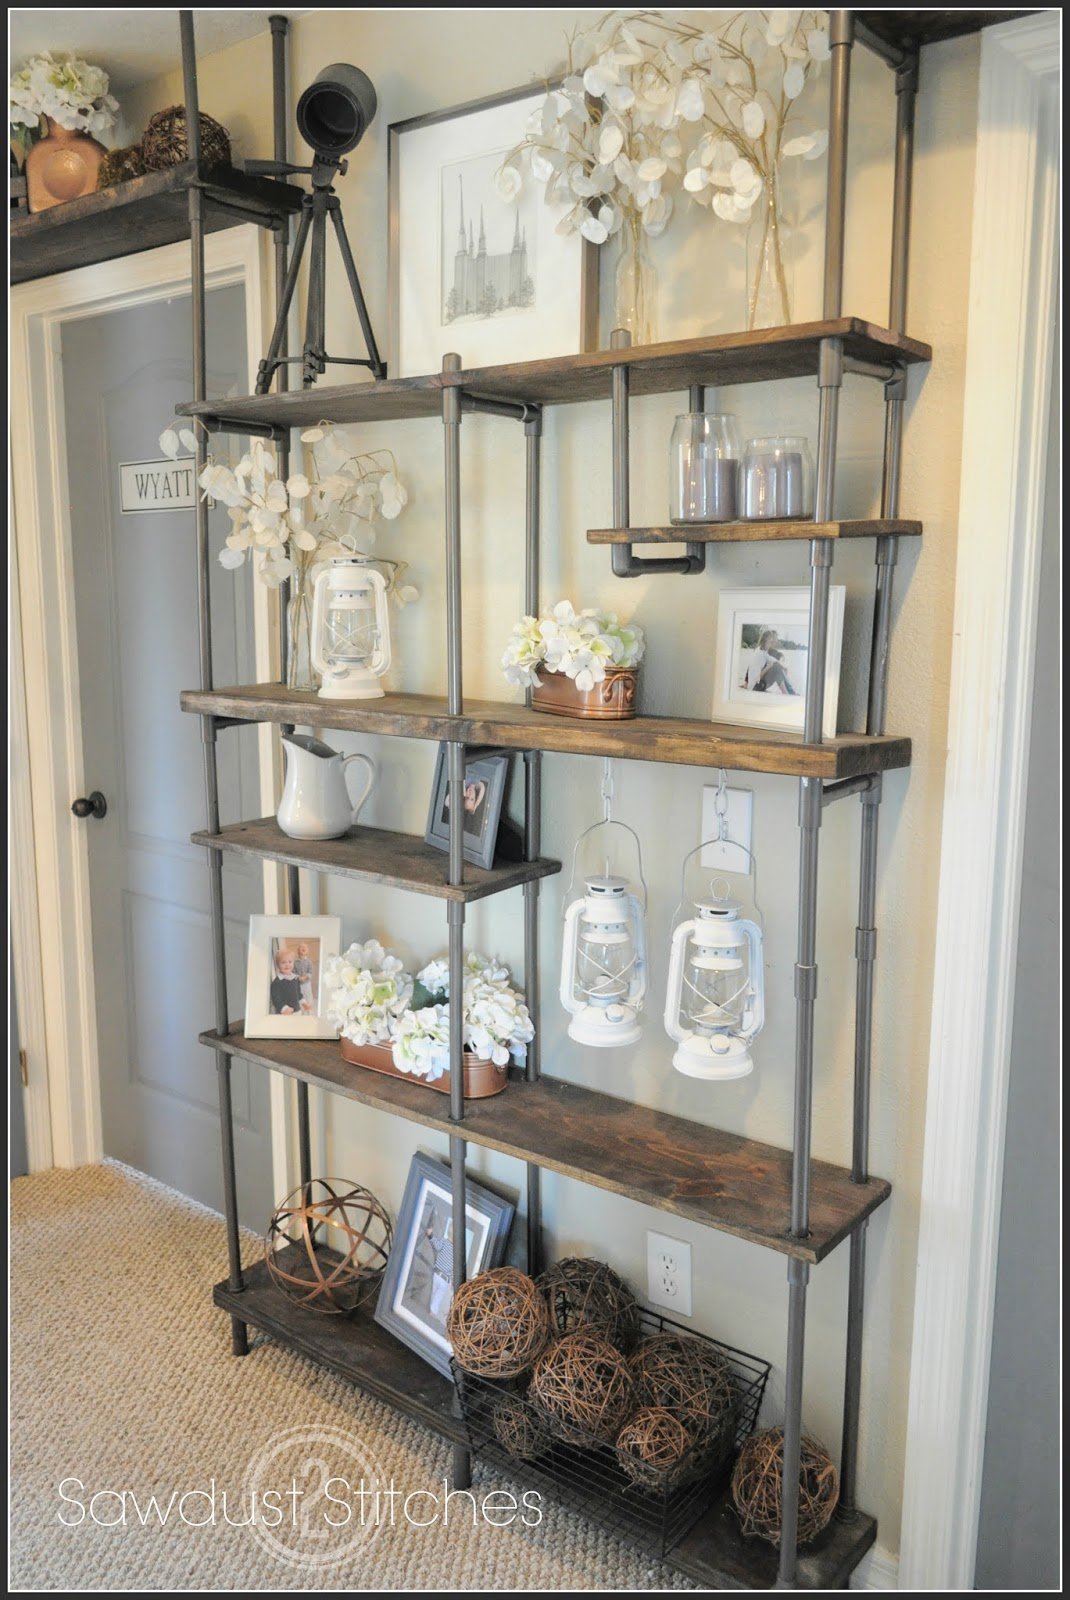 Dvd Regal Ideen Diy Faux Industrial Shelves - Uncookie Cutter